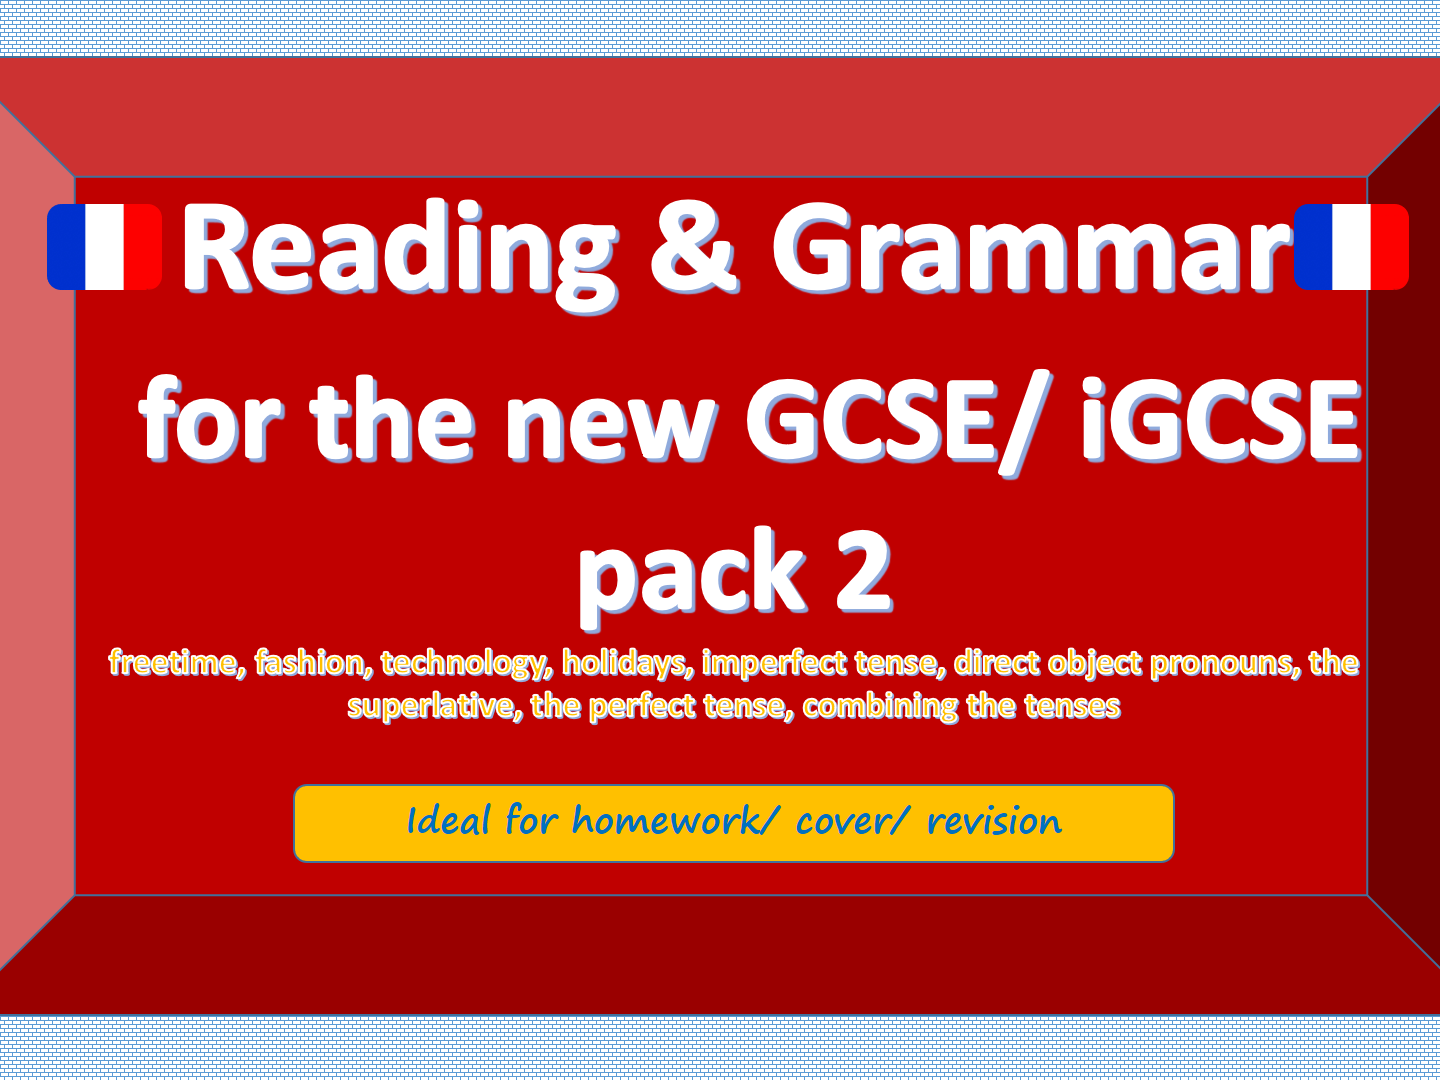 NEW GCSE / iGCSE Reading and Grammar French bundle 2